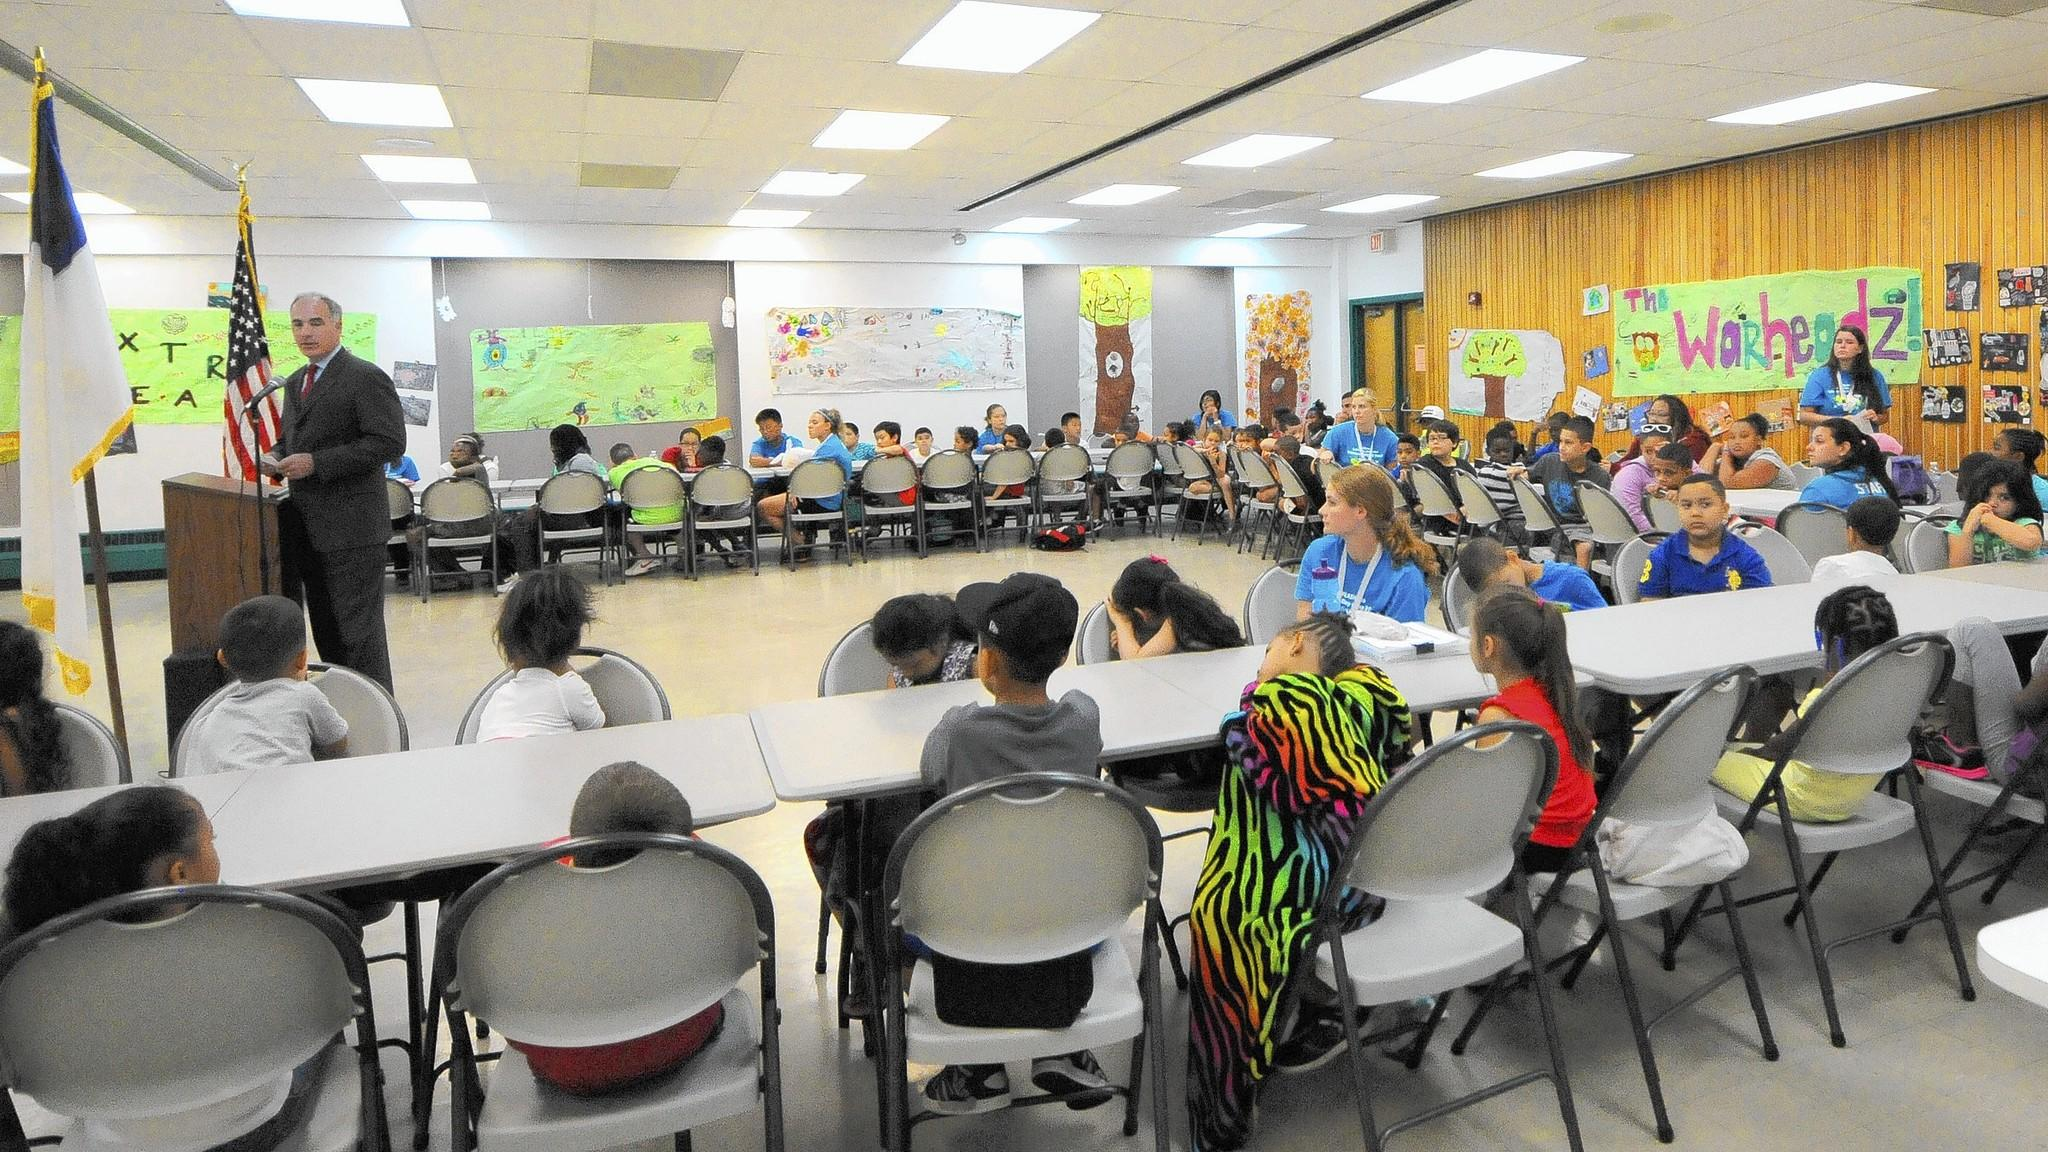 During a visit to the Allentown YMCA and YWCA on Monday, Sen. Bob Casey said that 'if children don't get enough to eat, they're not going to learn at the rate they need to learn.'